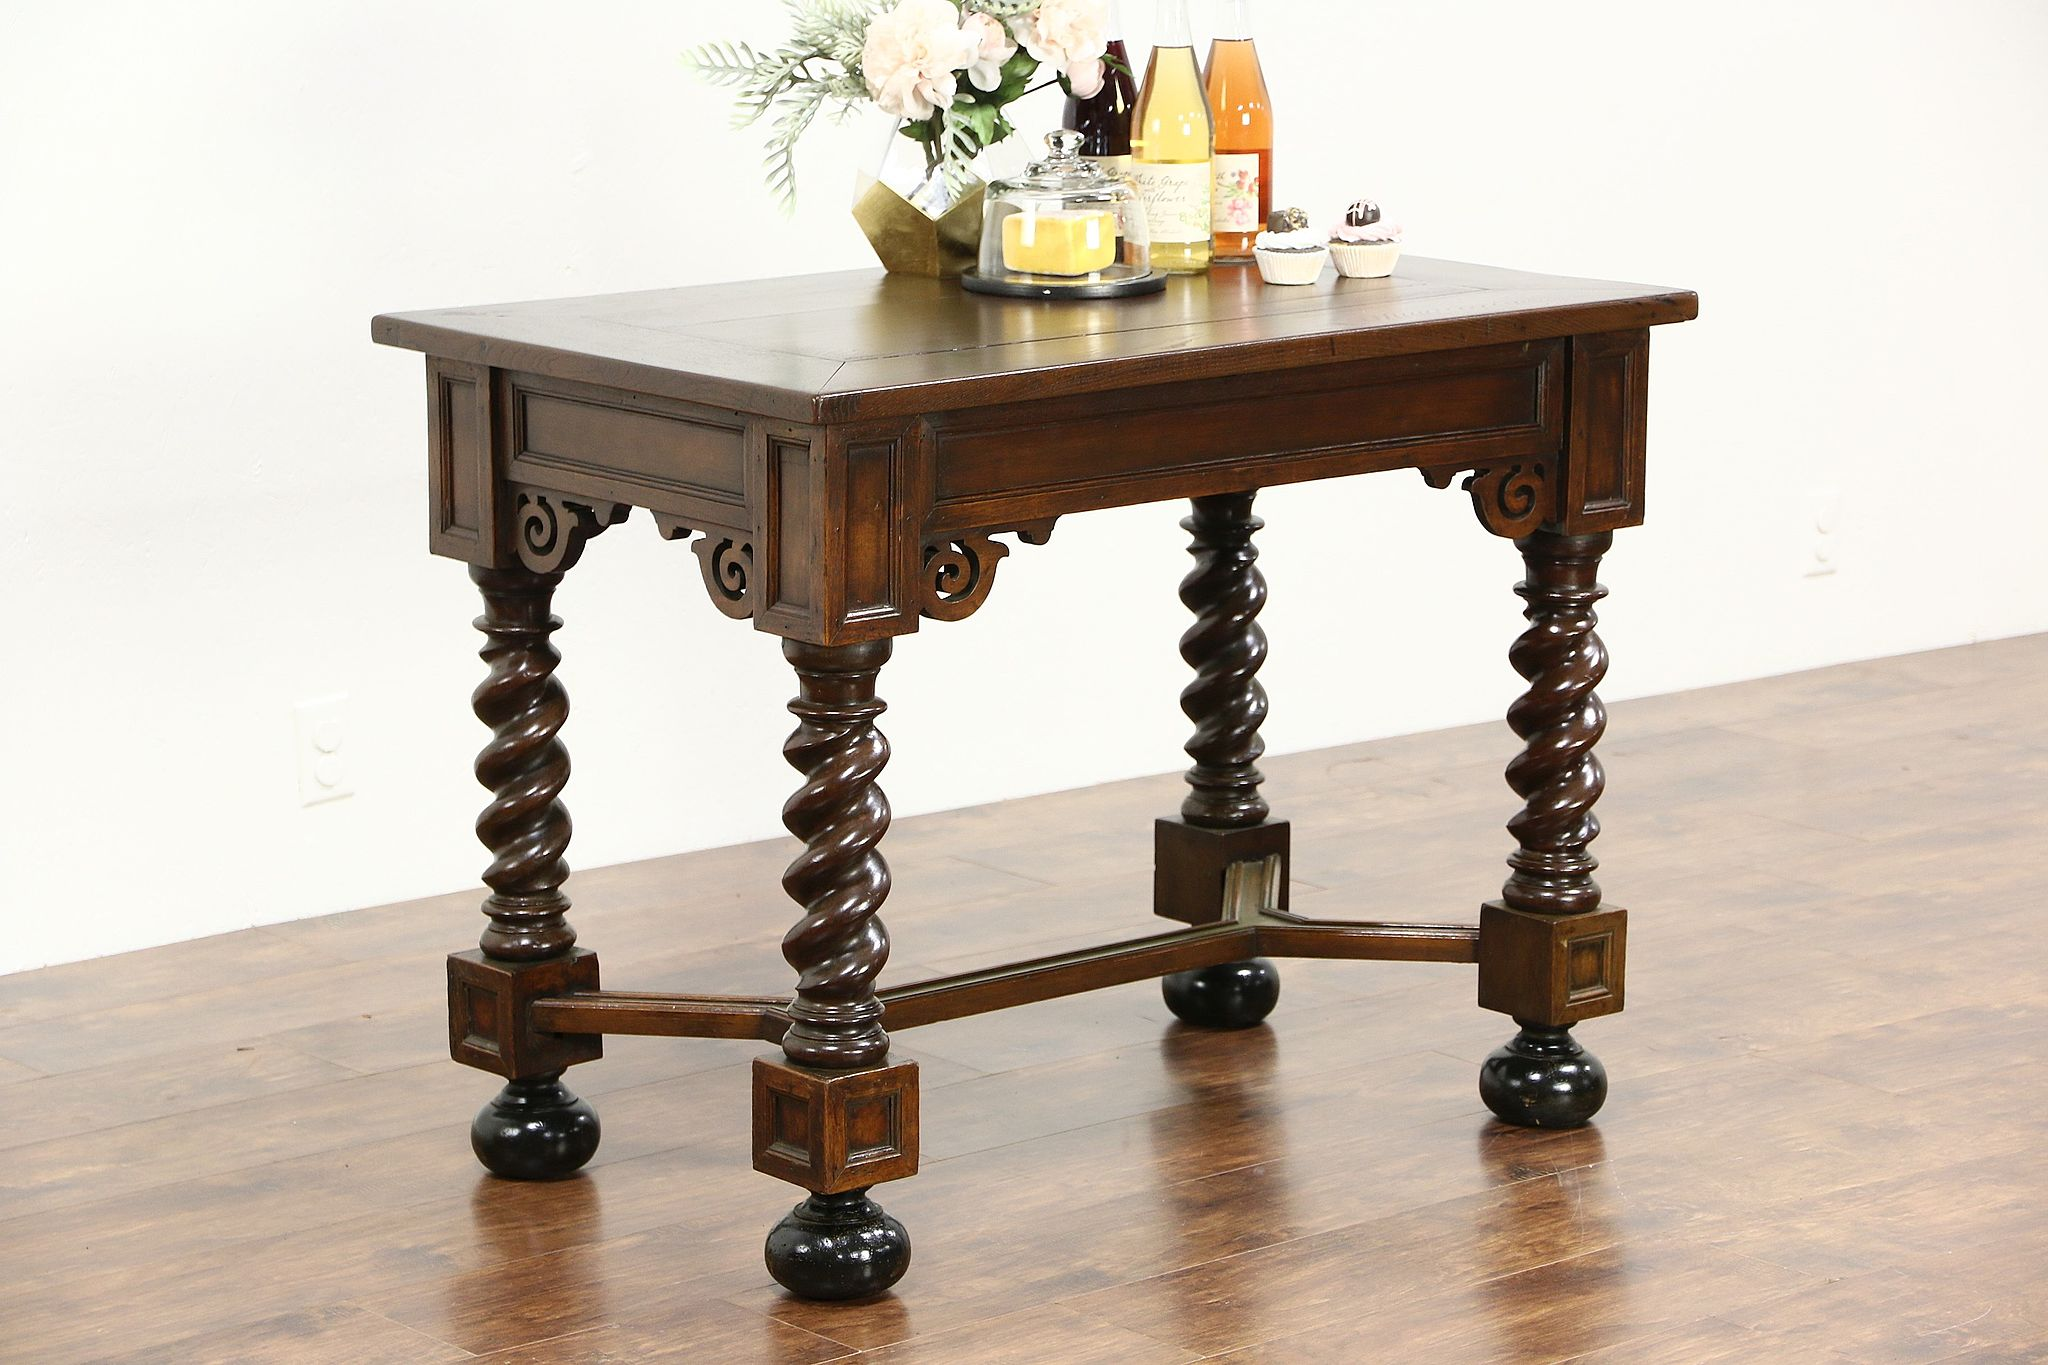 Sold Dutch Antique Oak Library Hall Or Console Table Kitchen Island Spiral Legs Harp